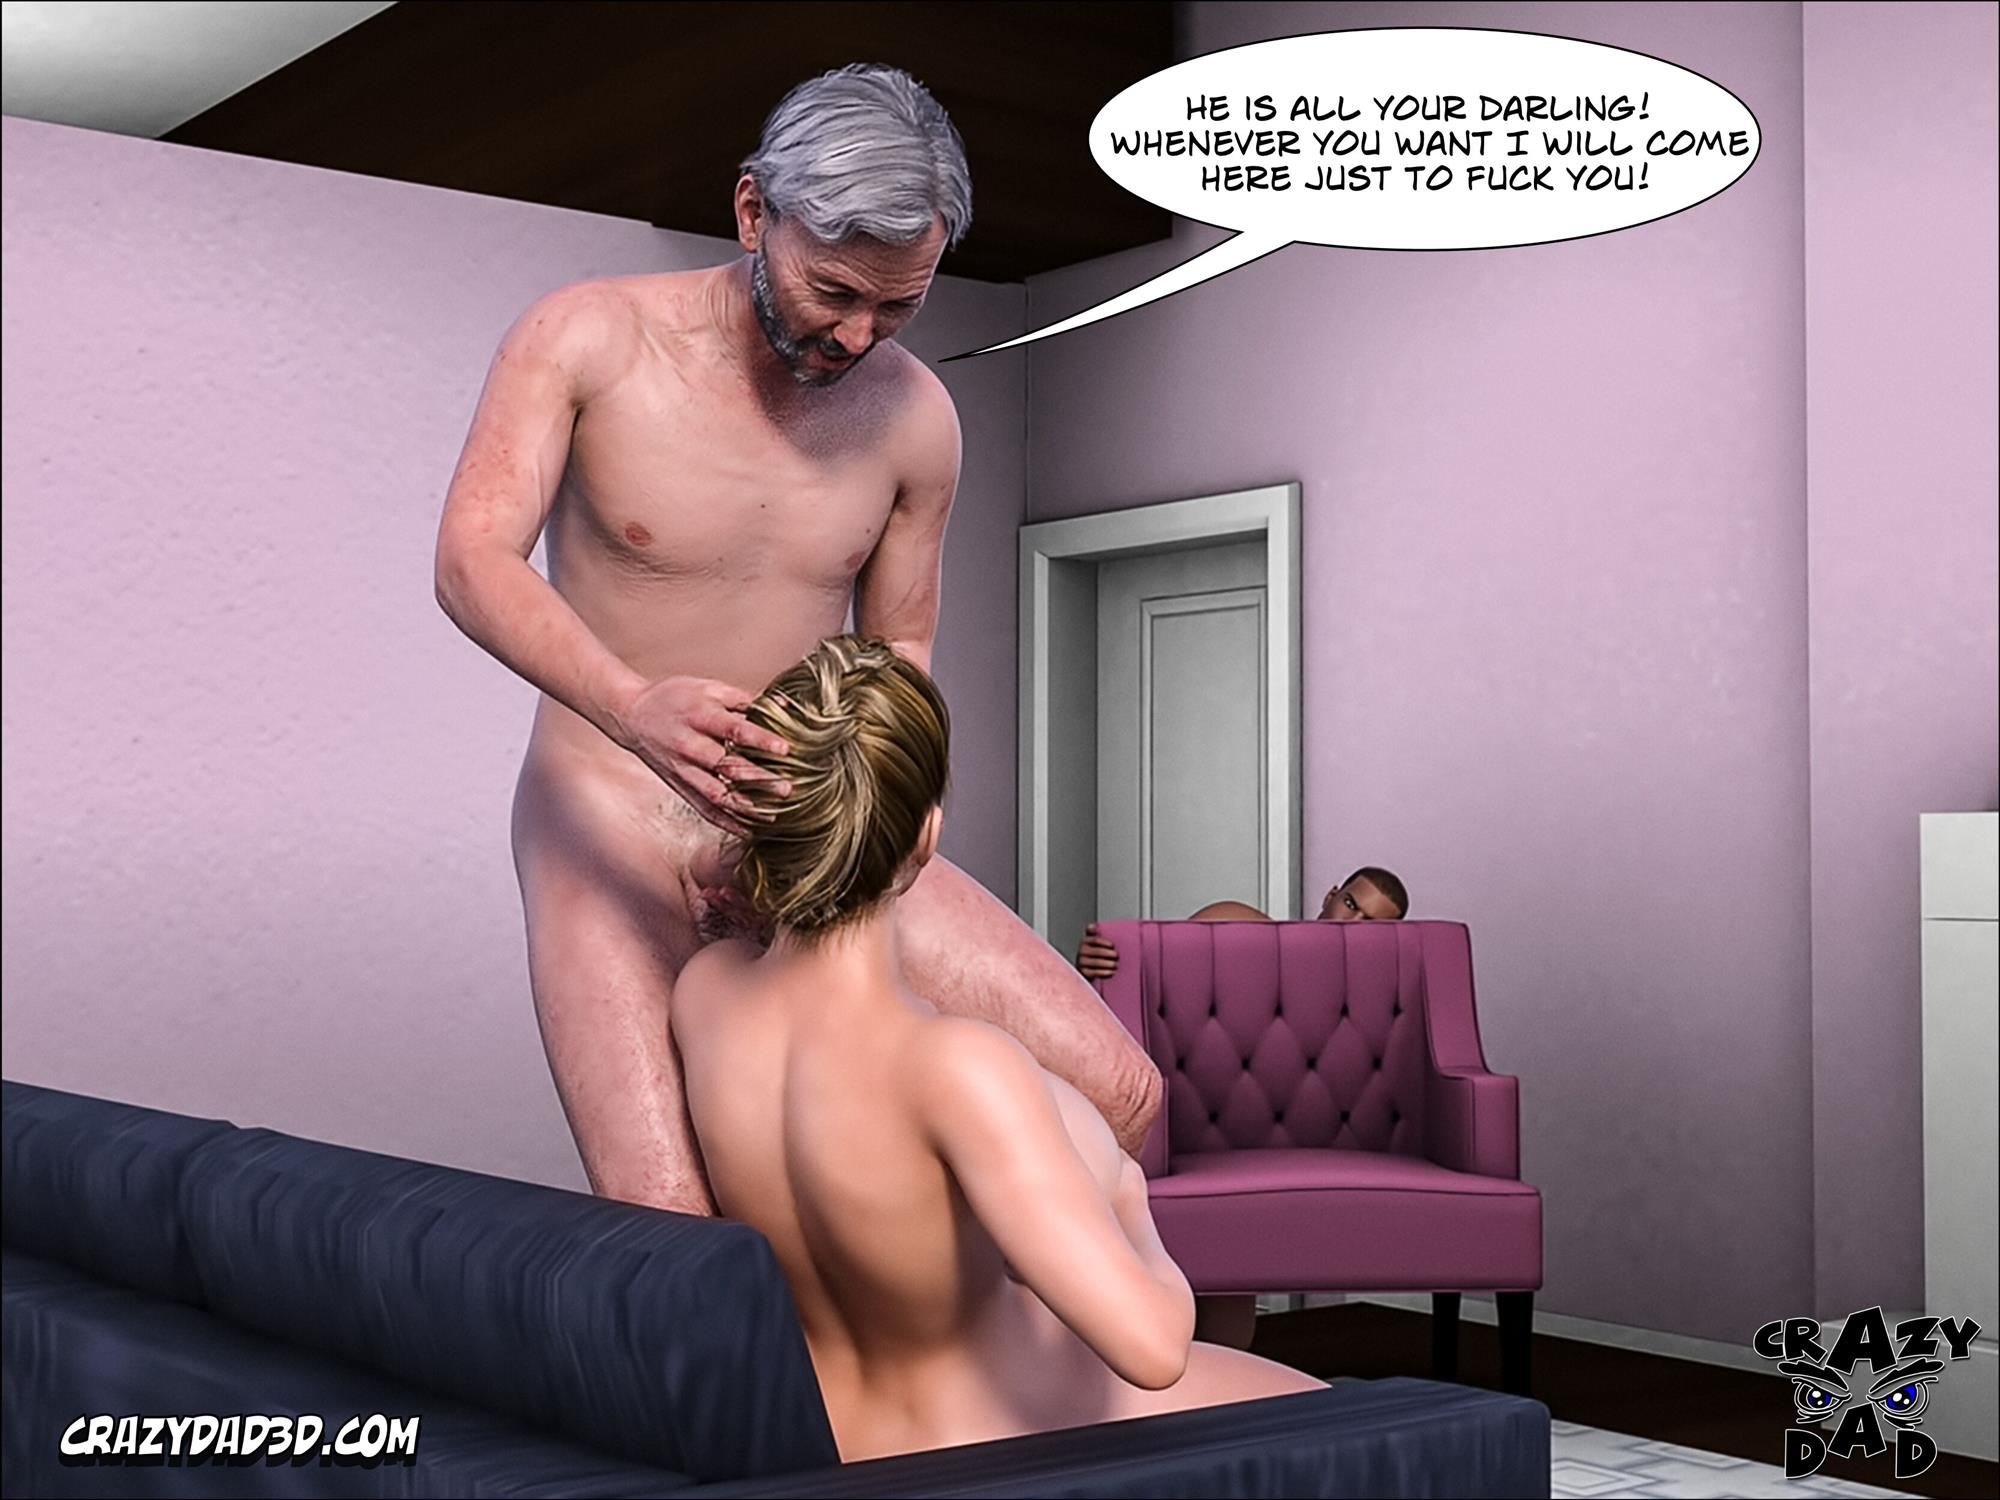 Father-in-Law at Home 10 [Crazy Dad 3D] - Foto 19